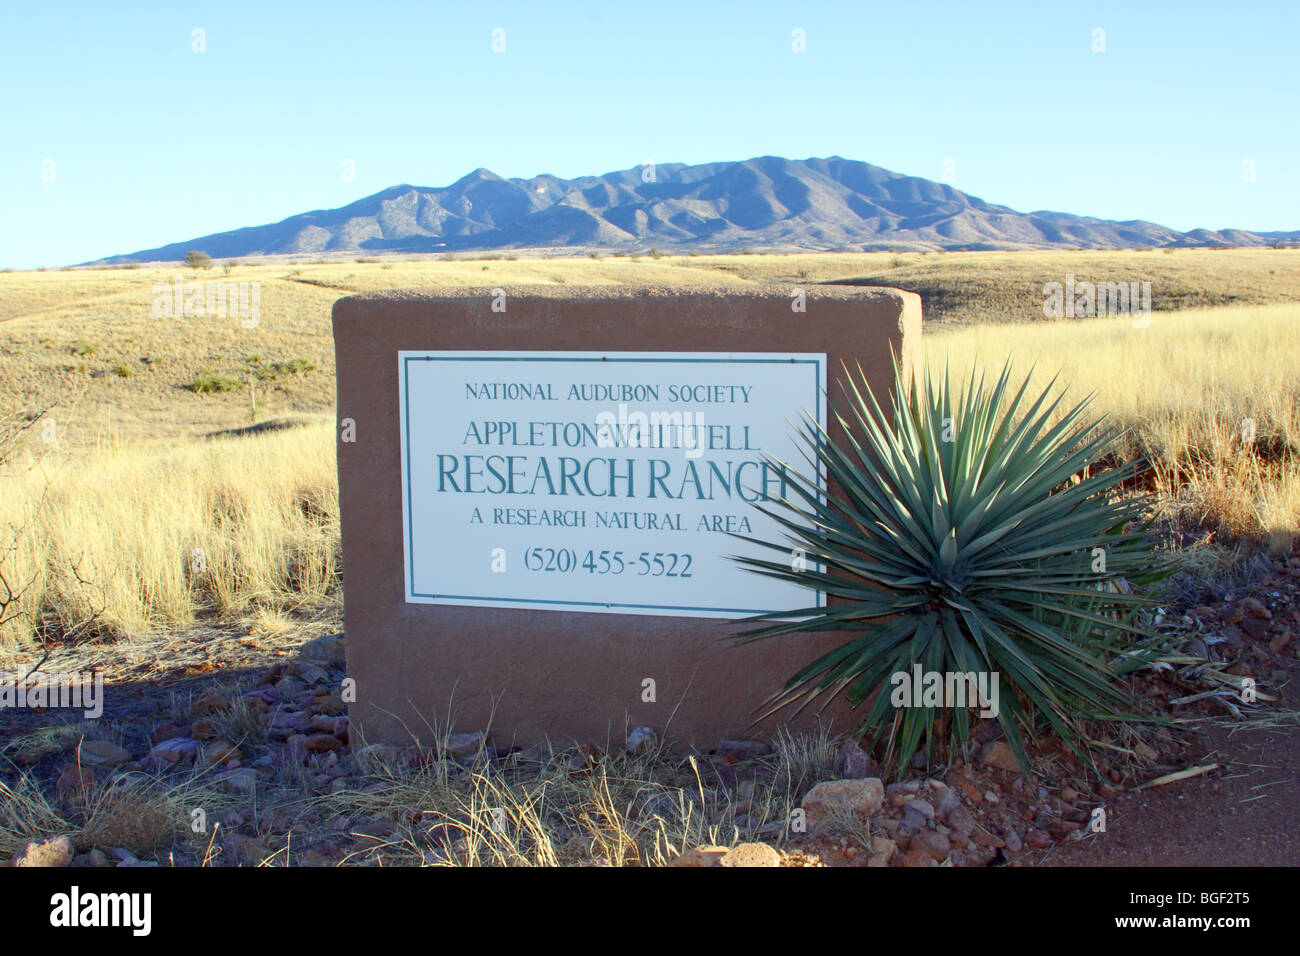 North gate to the National Audubon Society Appleton-Whittell Research Ranch near Elgin, Arizona, United States. - Stock Image